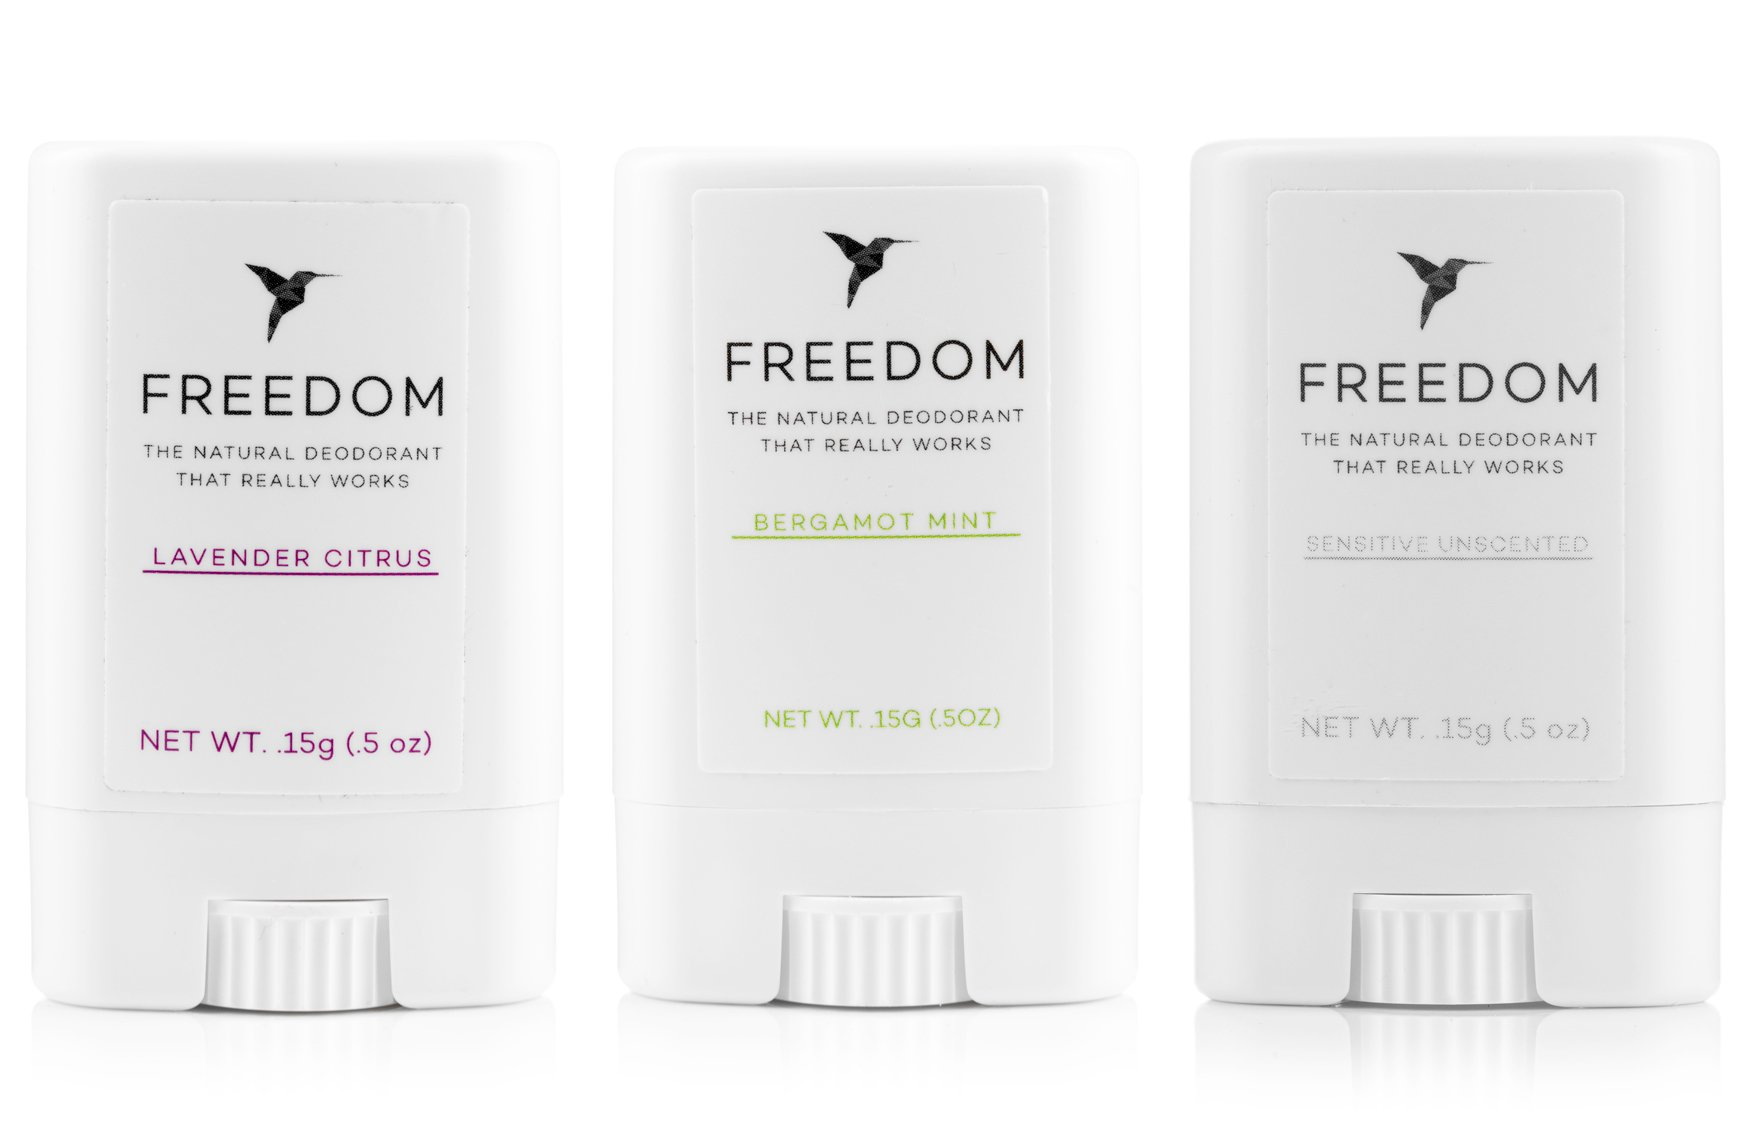 Freedom All-Natural, Aluminum Free Deodorant For Men and Women That Works All Day, Travel Size 3 Pack (Lavender, Mint, Unscented)